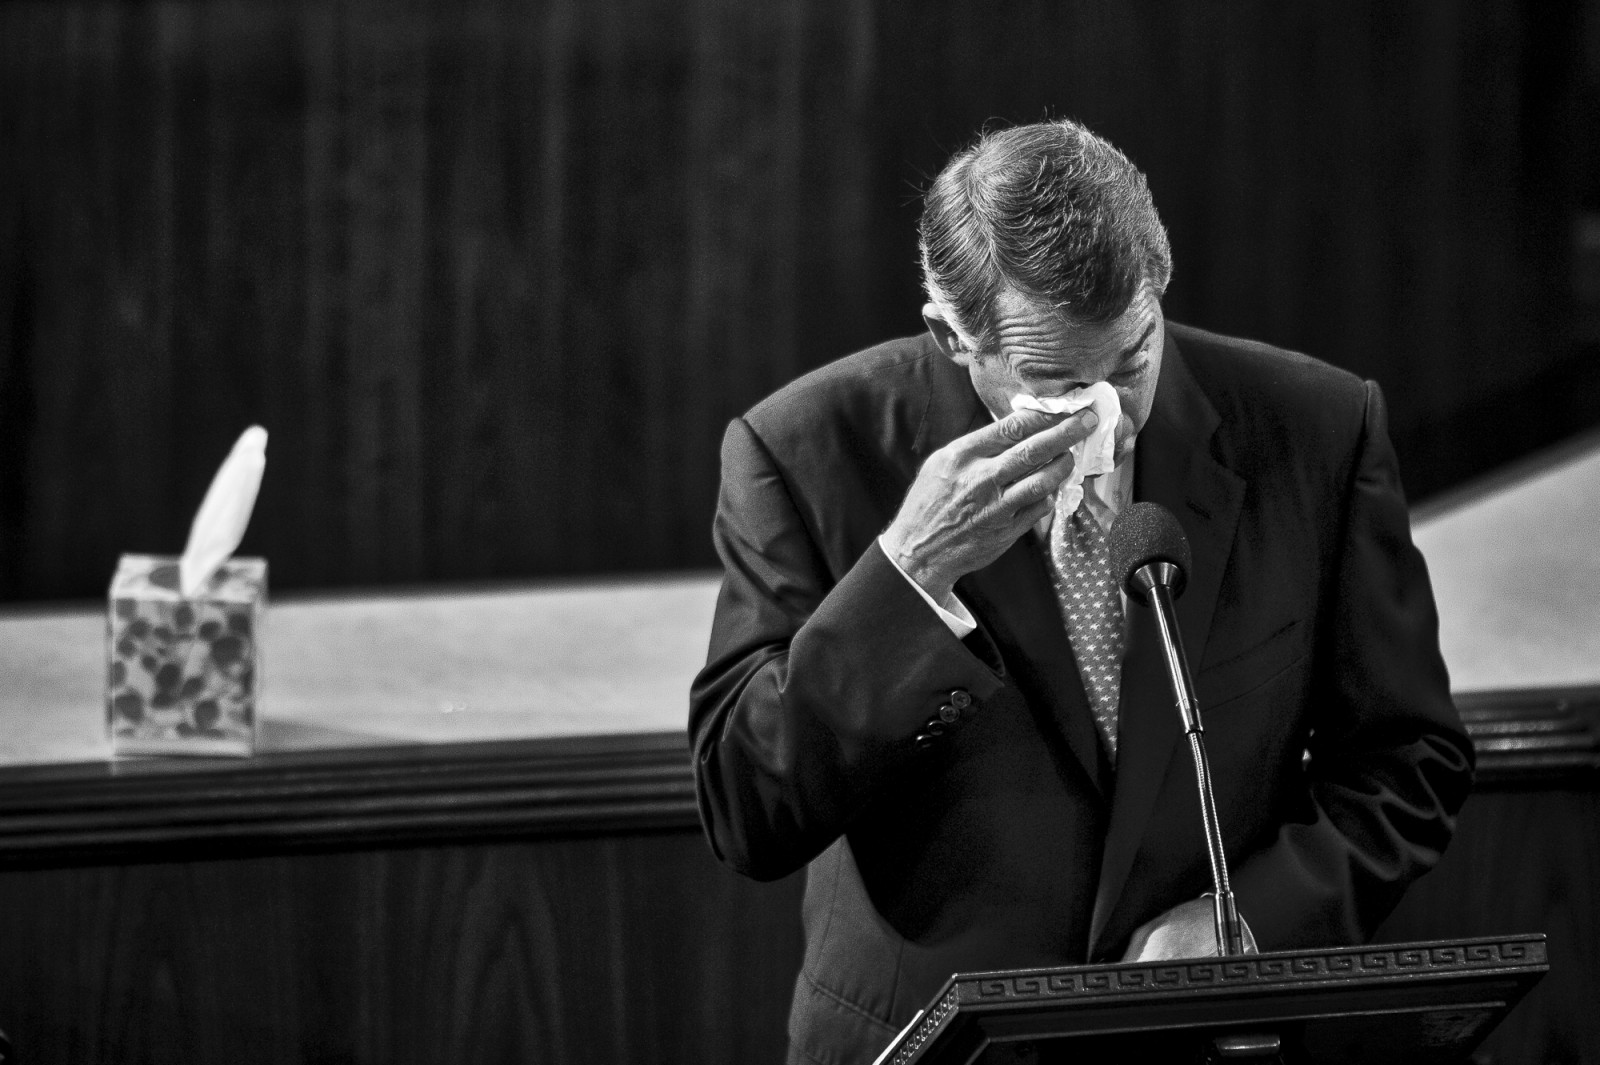 The day before he is to retire from Congress, Speaker of the House John Boehner (R-OH) becomes emotional as he delivers his farewell address to the House of Representatives on October 29, 2015 in Washington, D.C. Following his address, the House of Representatives will vote on Boehner's replacement for Speaker. Photo by Pete Marovich/UPI